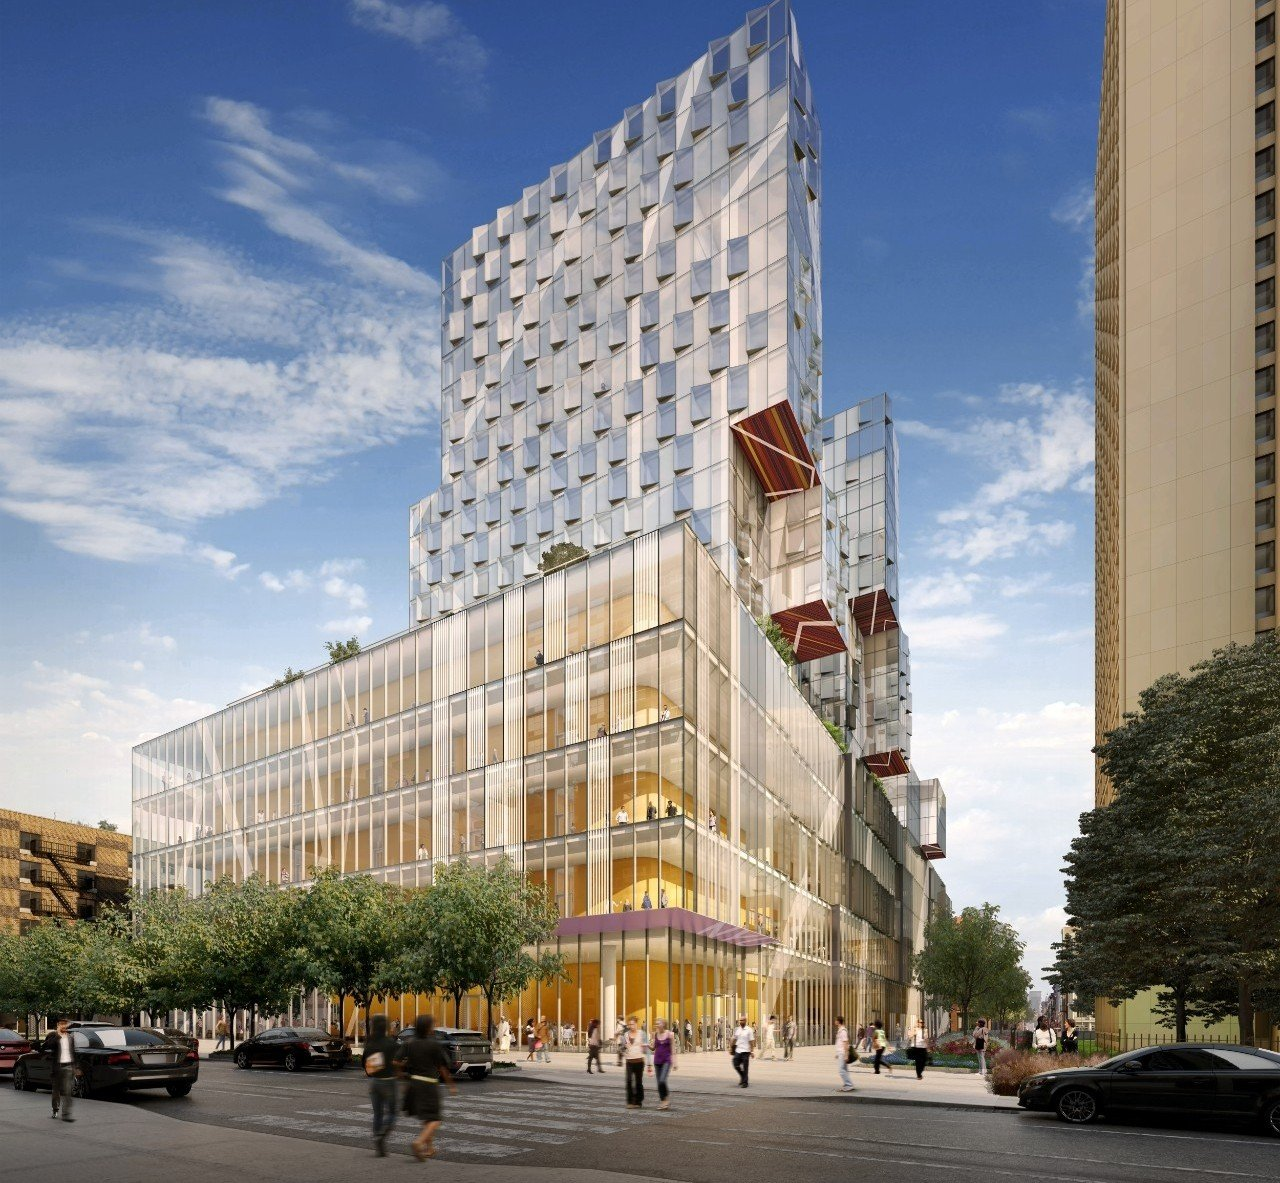 NYU reveals design for $1B 23-story building at controversial